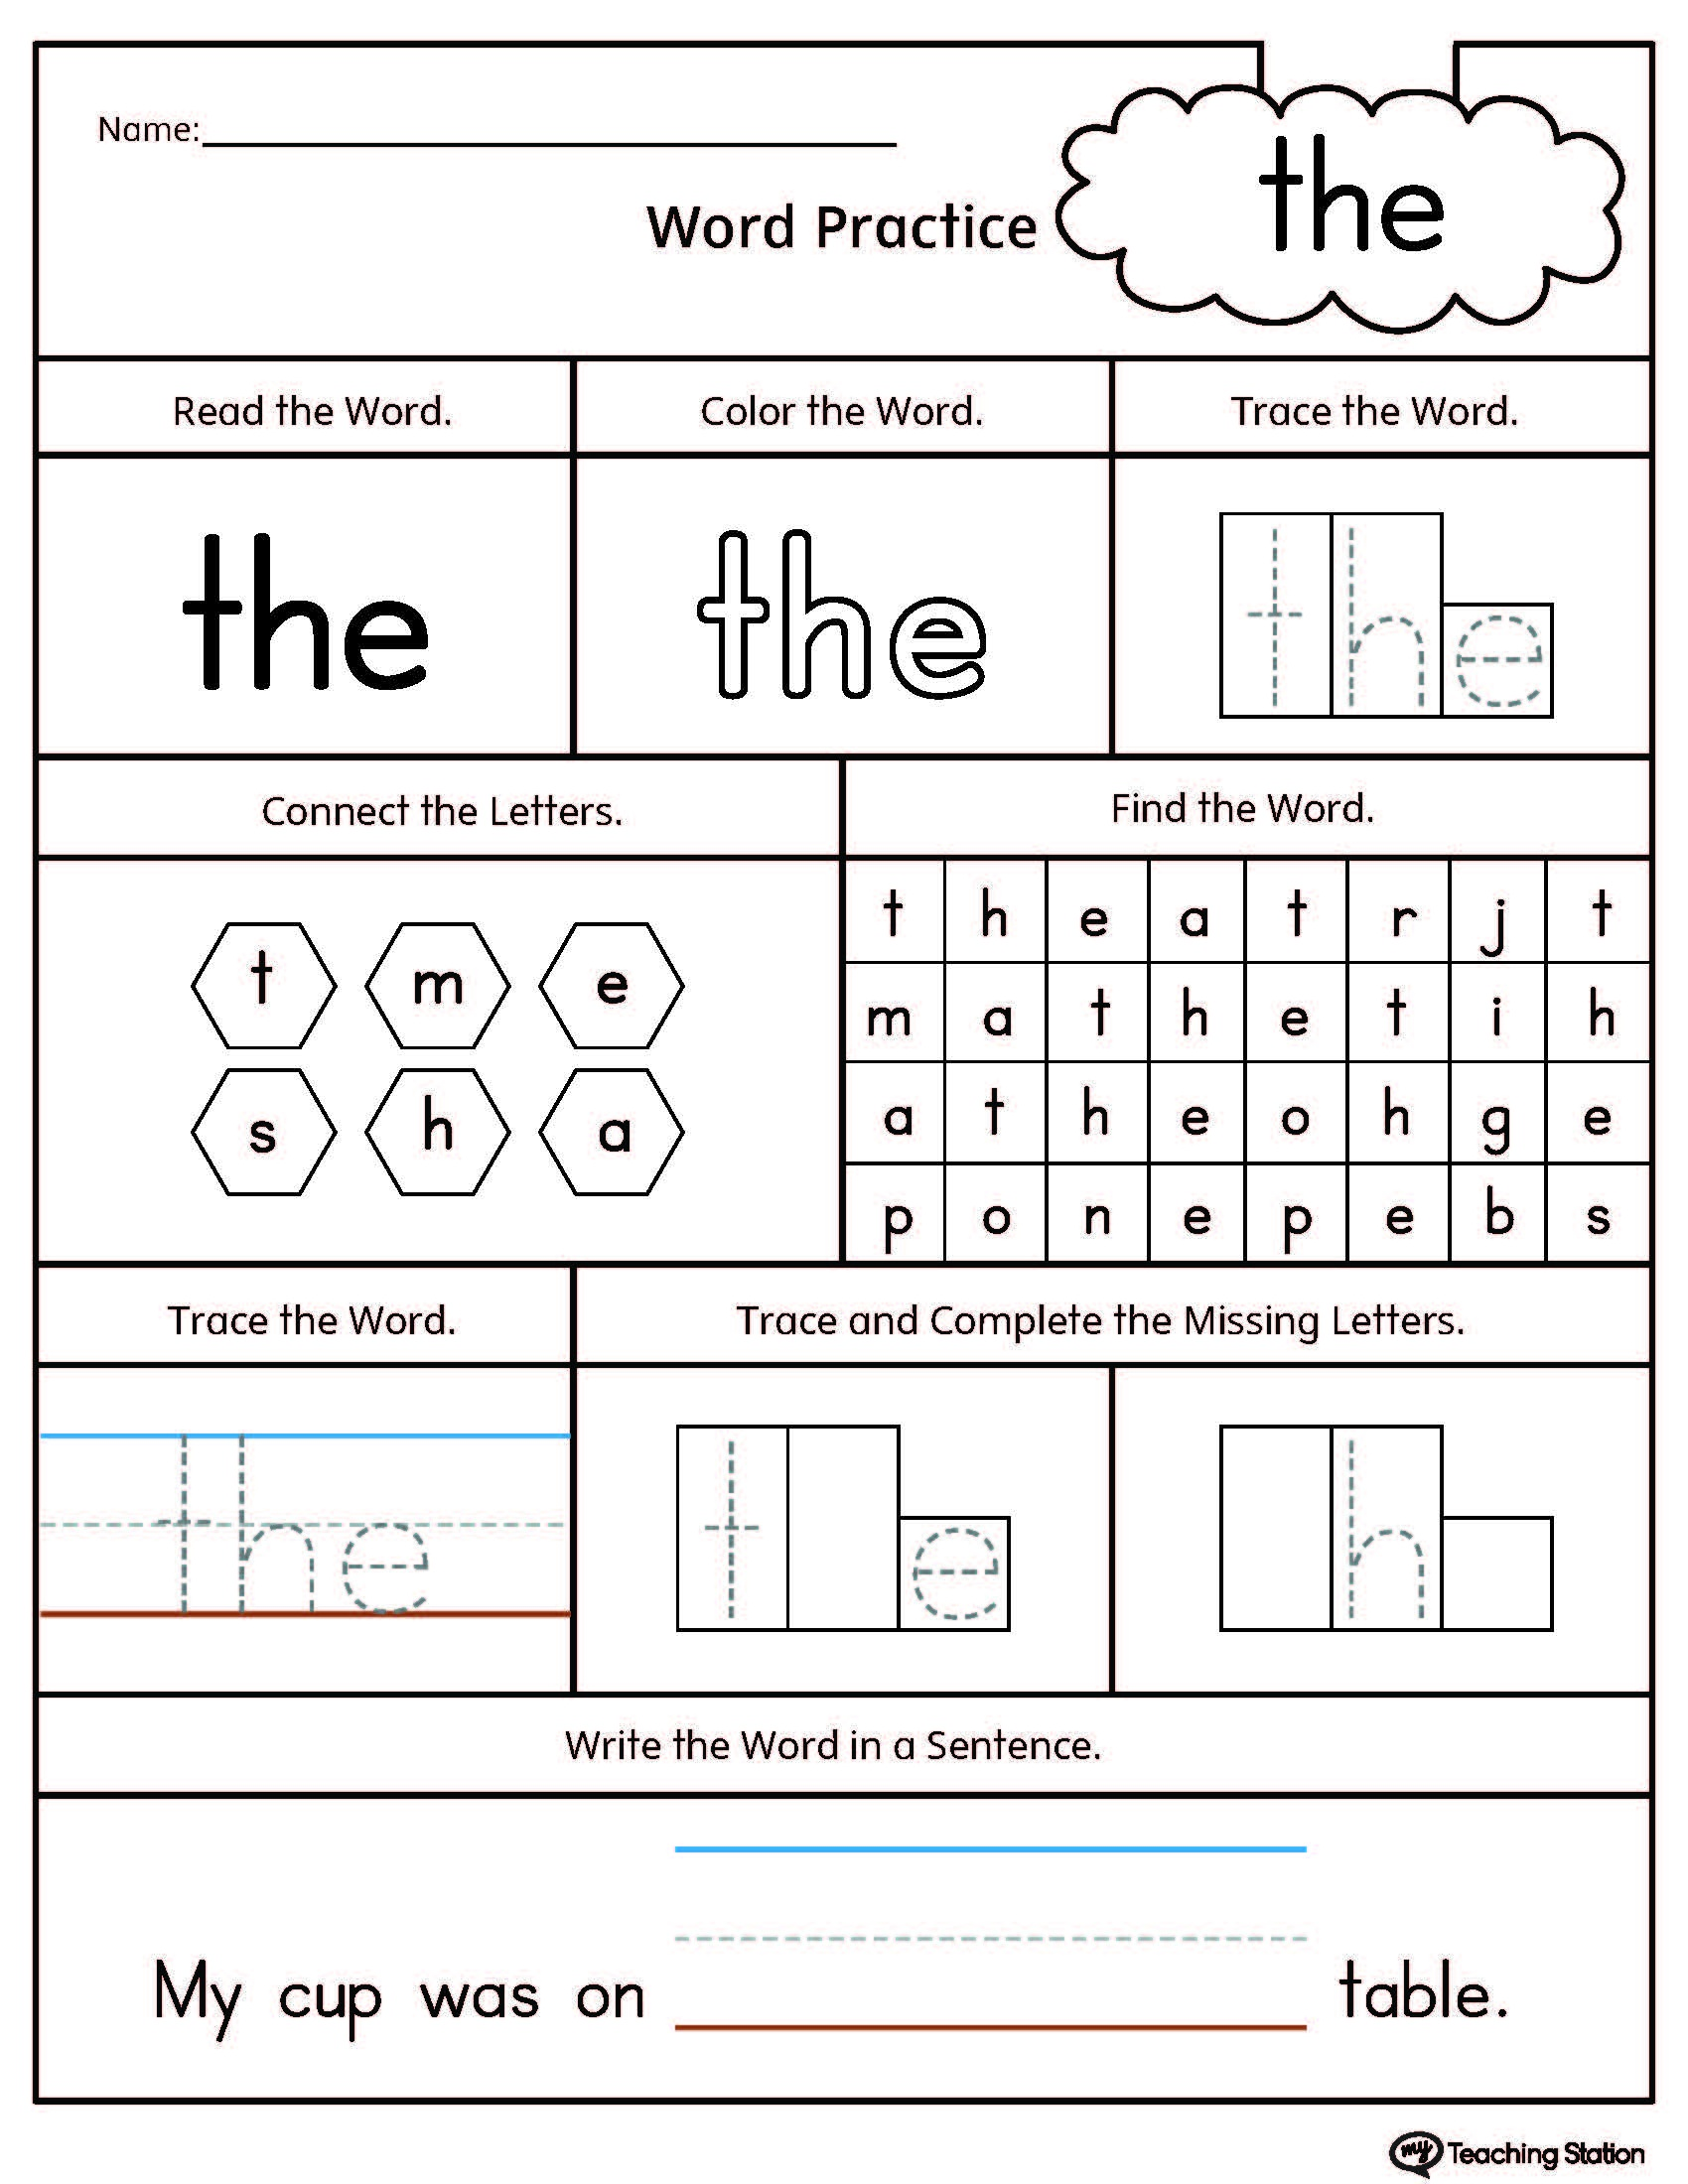 Sight Word The Printable Worksheet | Myteachingstation - Free Printable Sight Word Worksheets